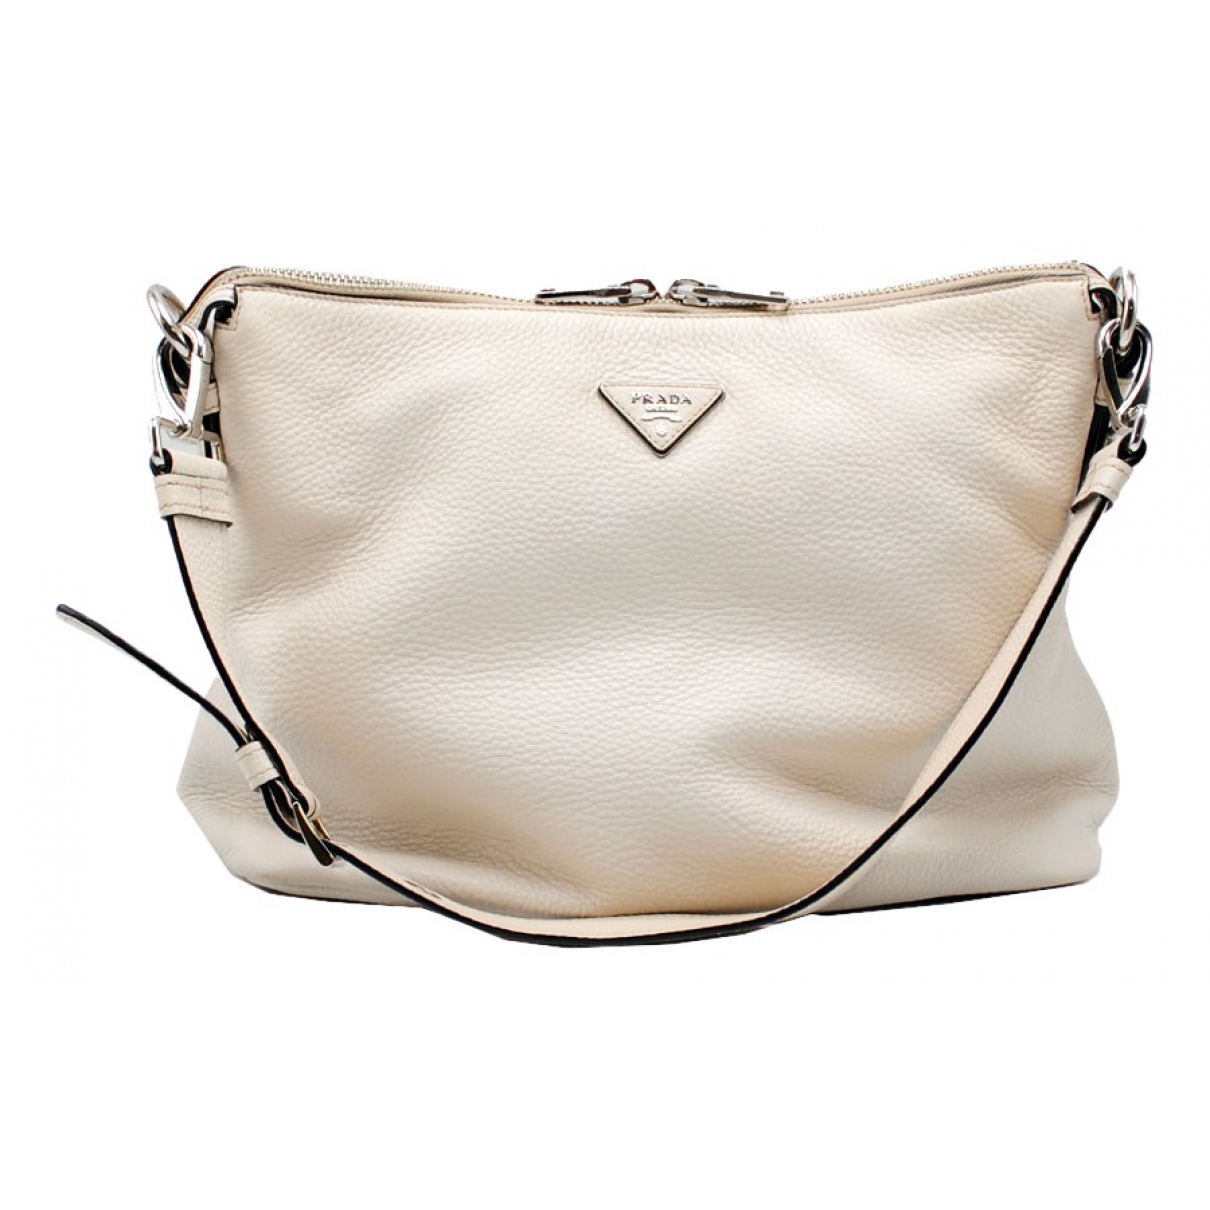 Prada N White Leather handbag for Women N